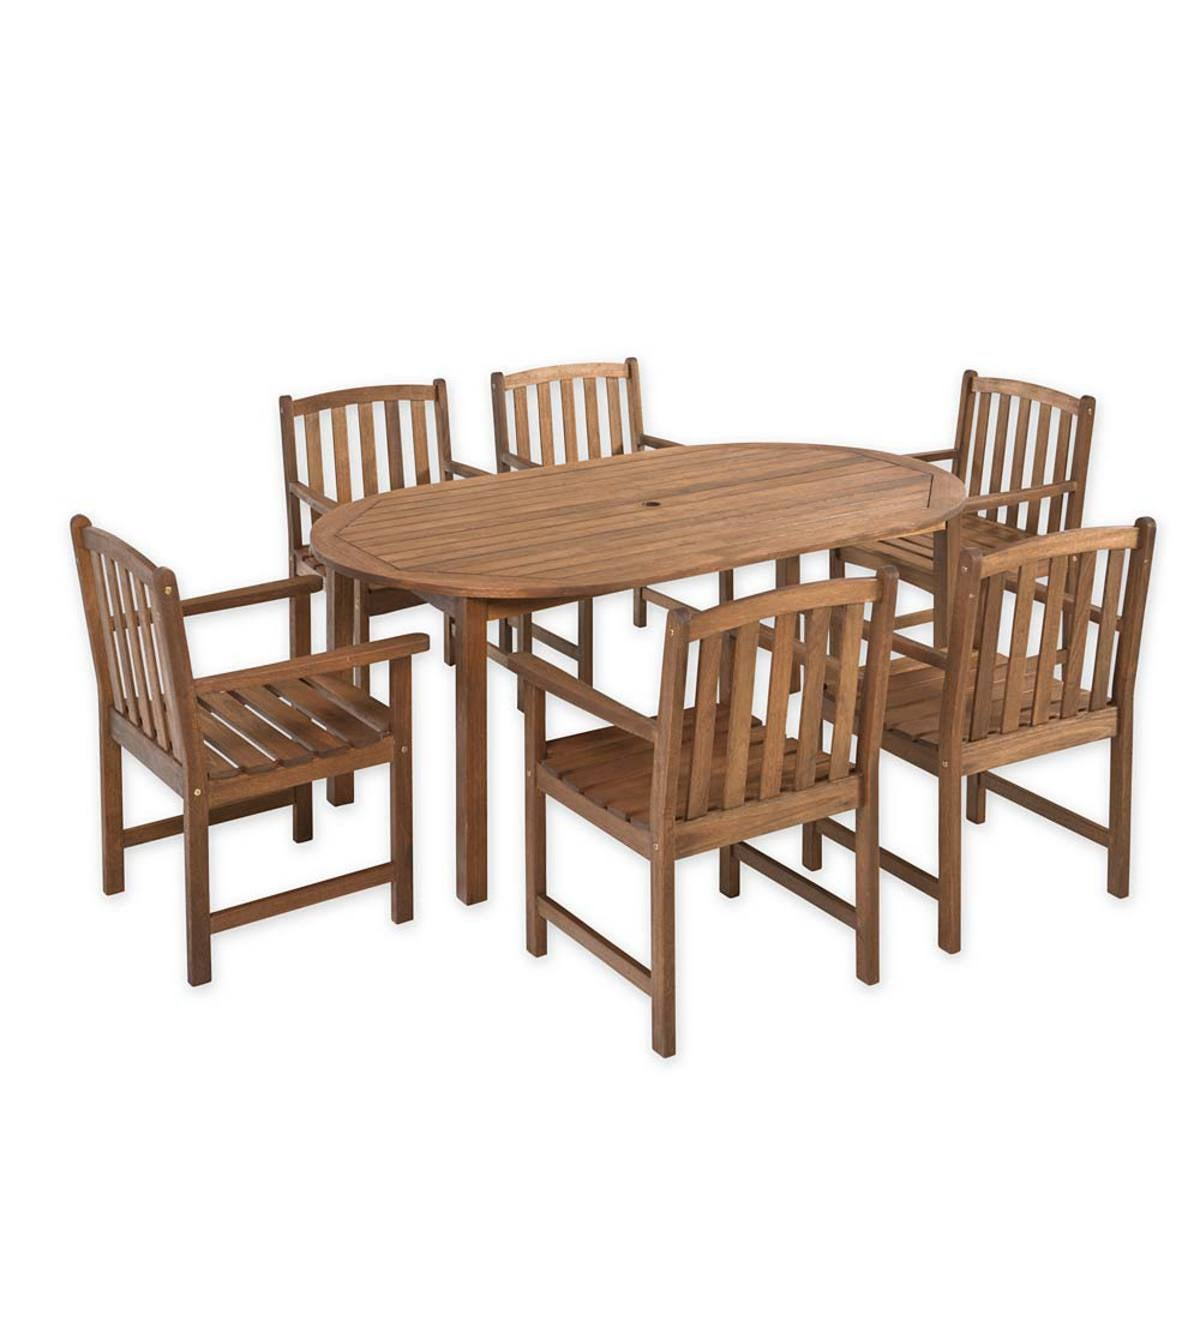 Lancaster Outdoor Furniture Collection, Eucalyptus Wood Oval Table and 6 Chairs